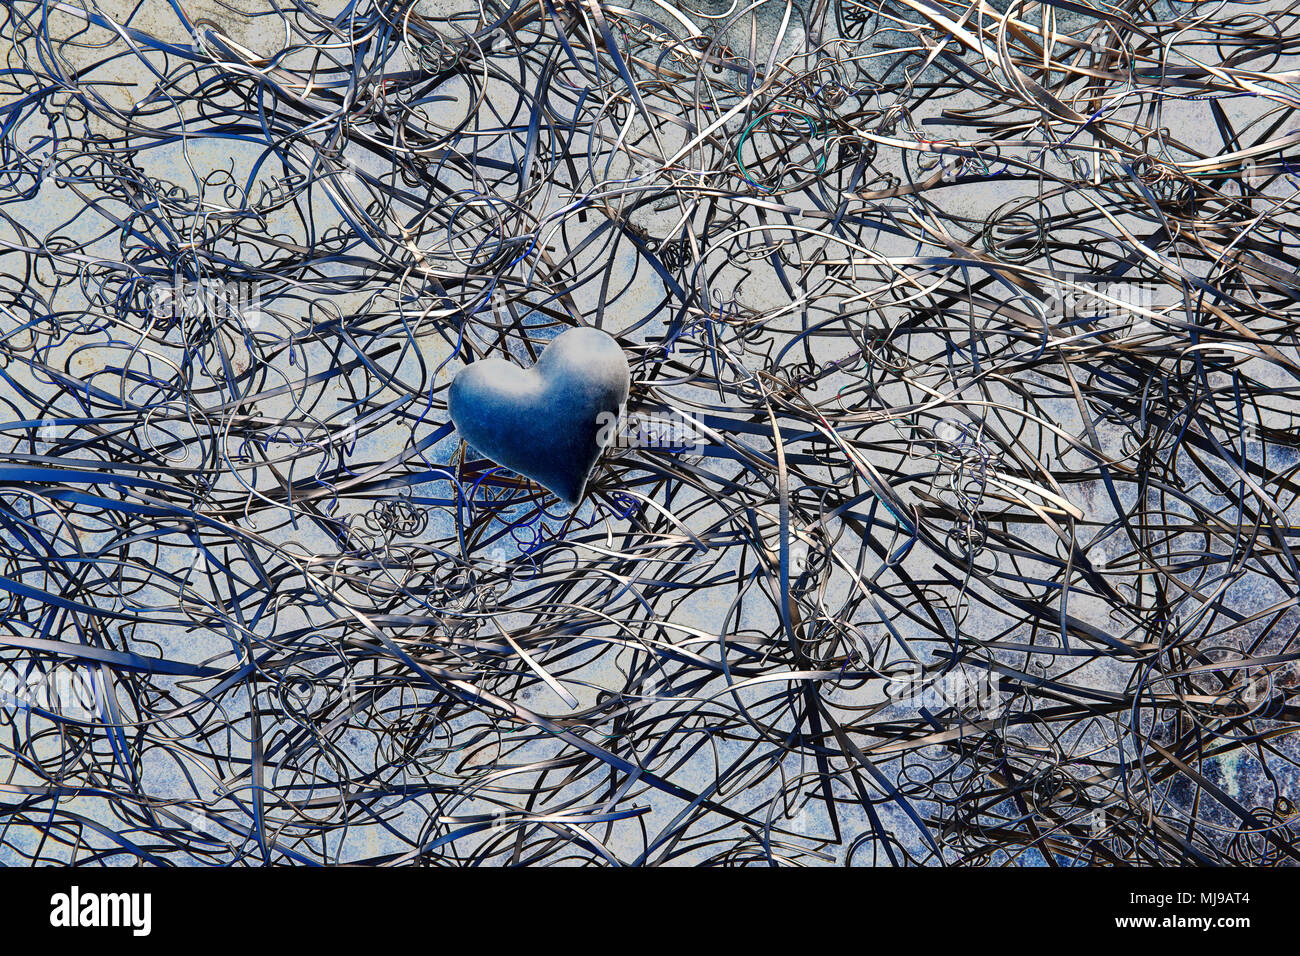 A dark blue heart at the centre of a tangle of card offcuts on a background of slate. - Stock Image